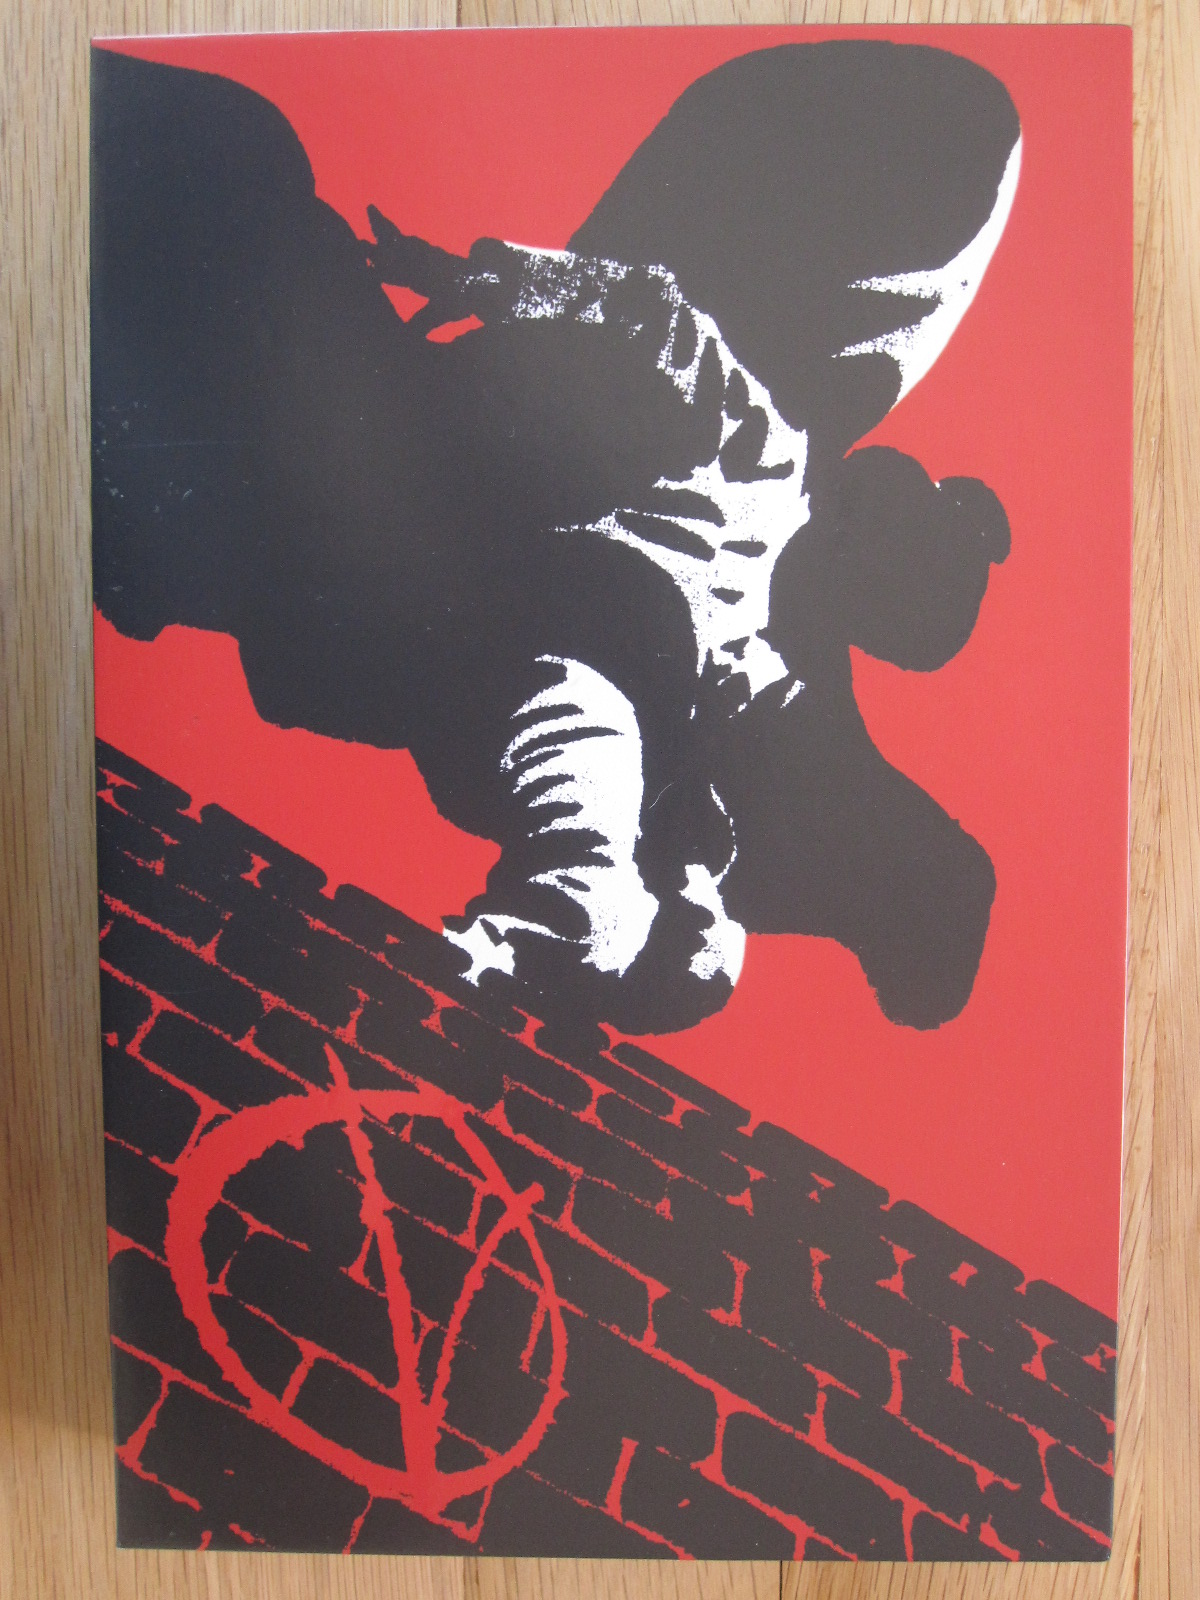 v for vendetta essays George orwell's 'animal farm' is an allegorical fairy tale which is profound in its condemnations of totalitarian regimes the novel explores the concepts of propaganda, totalitarianism and tyranny.